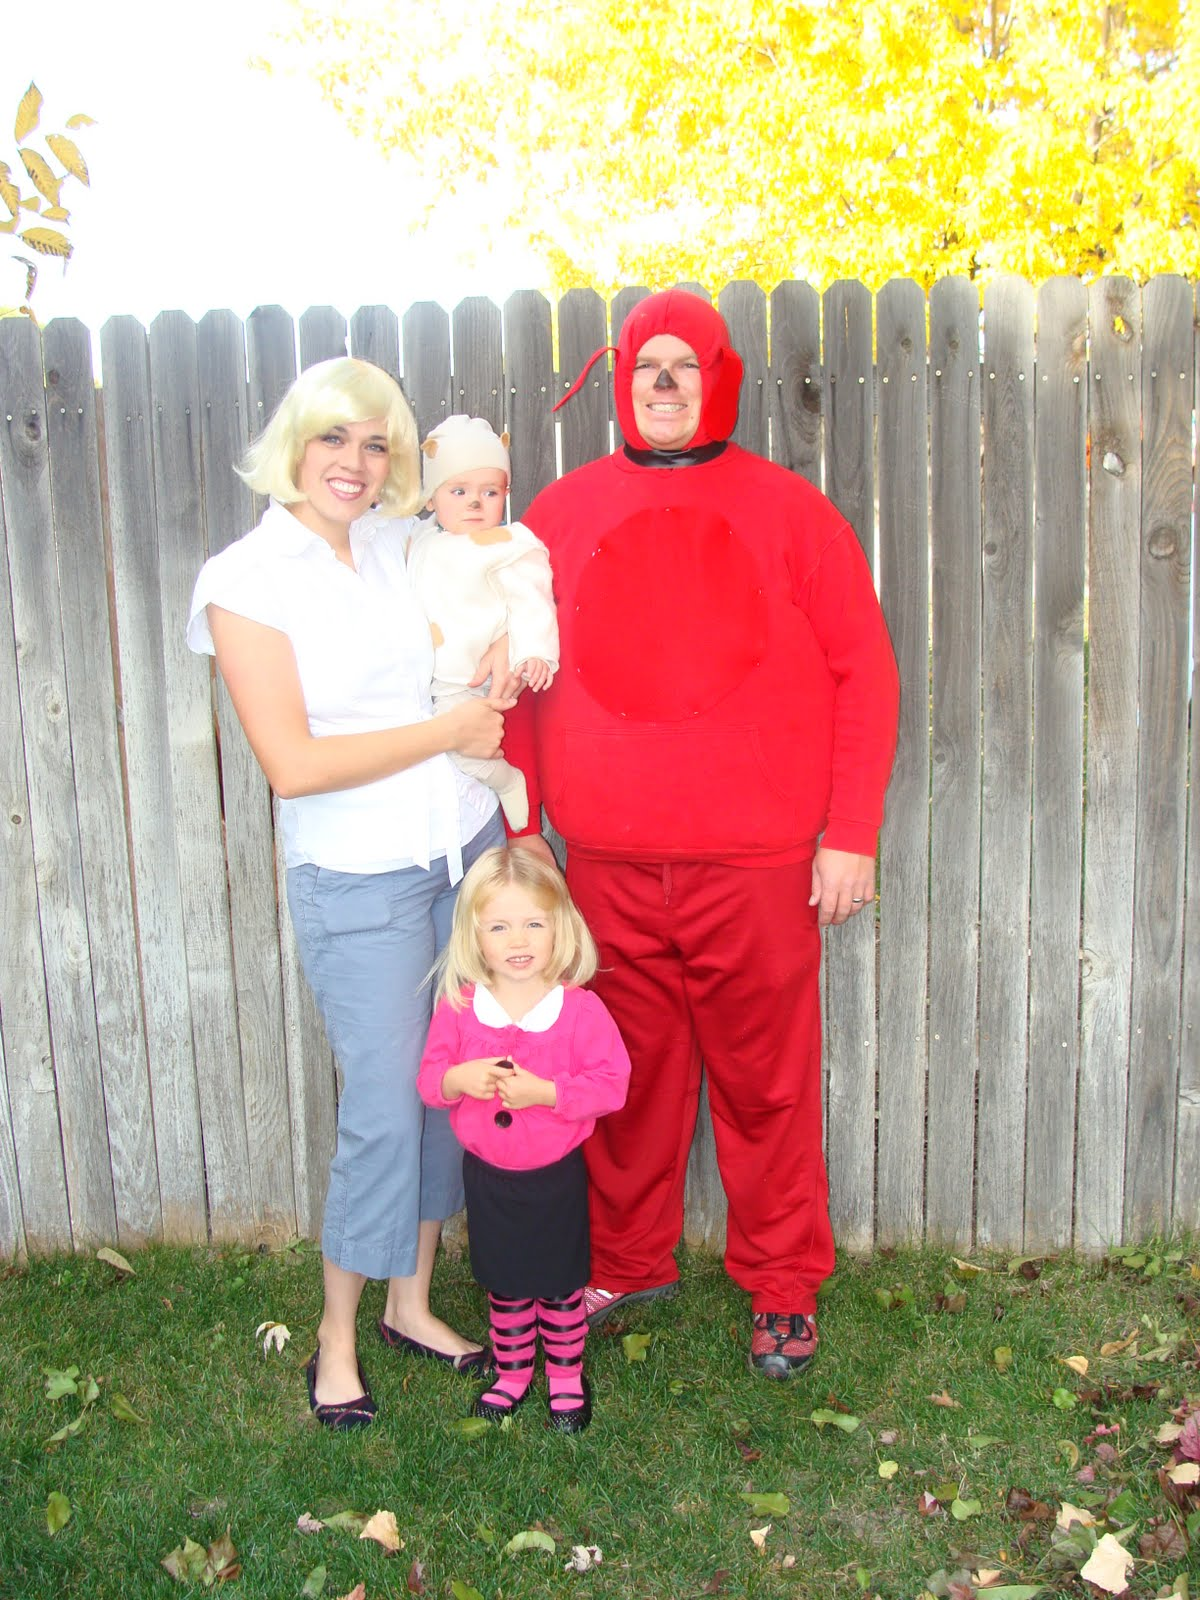 007jpg - Clifford The Big Red Dog Halloween Costume